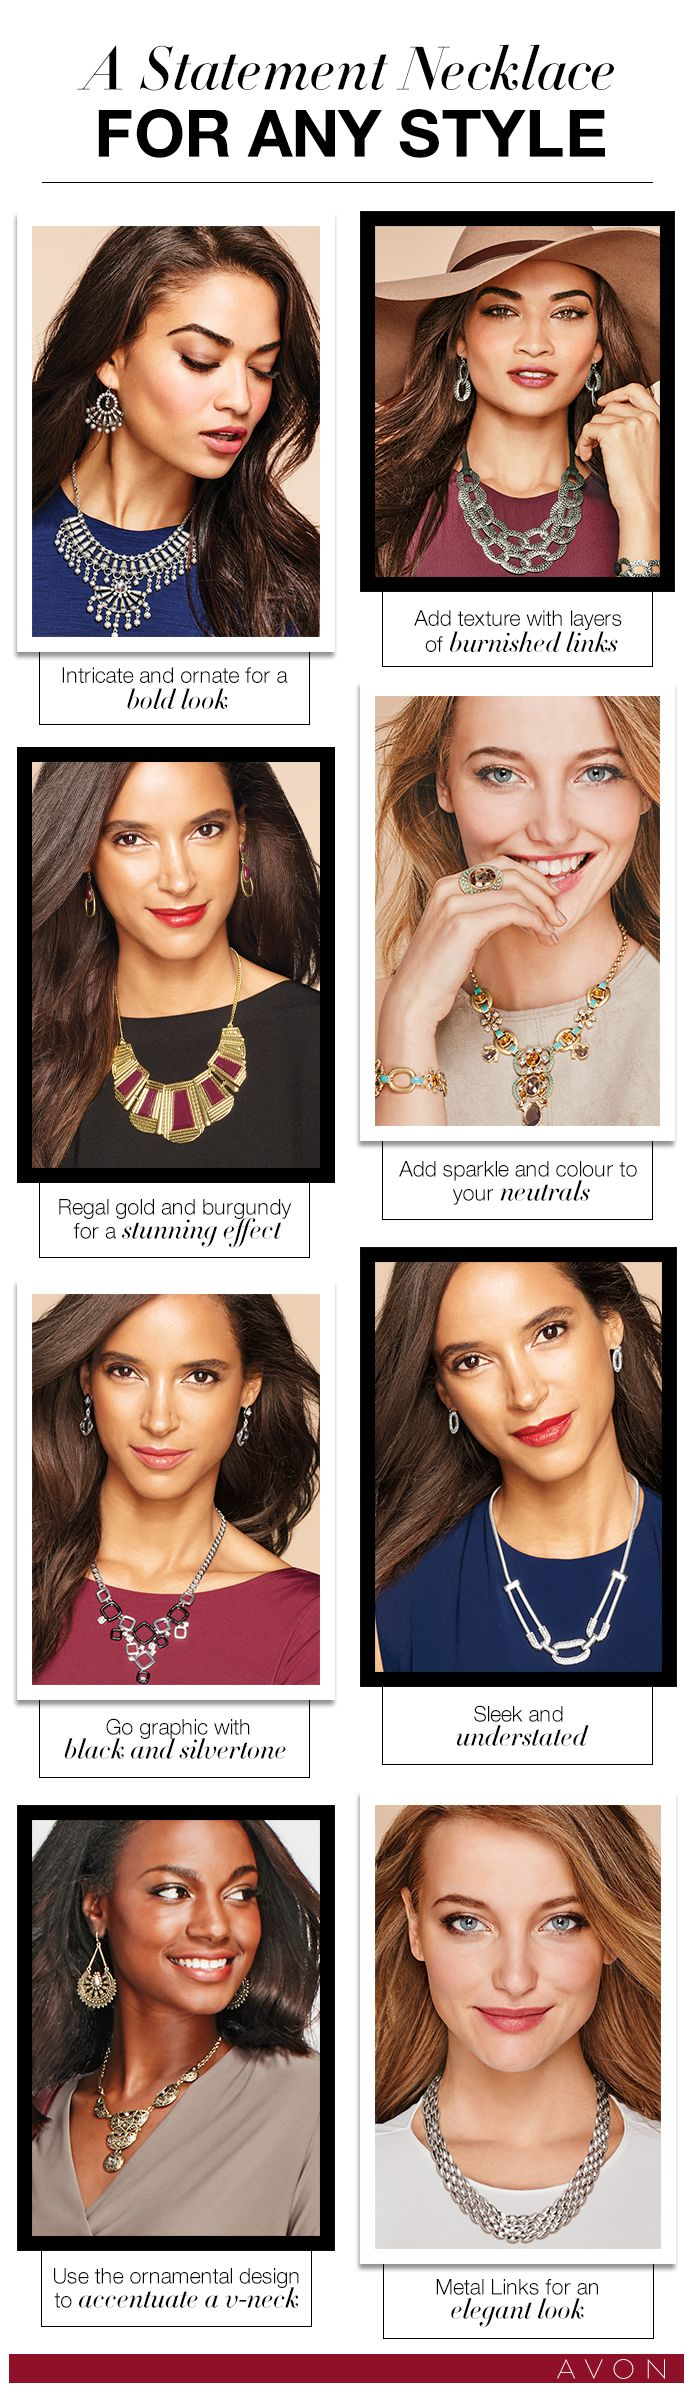 There's a statement necklace for any style #AvonCanada